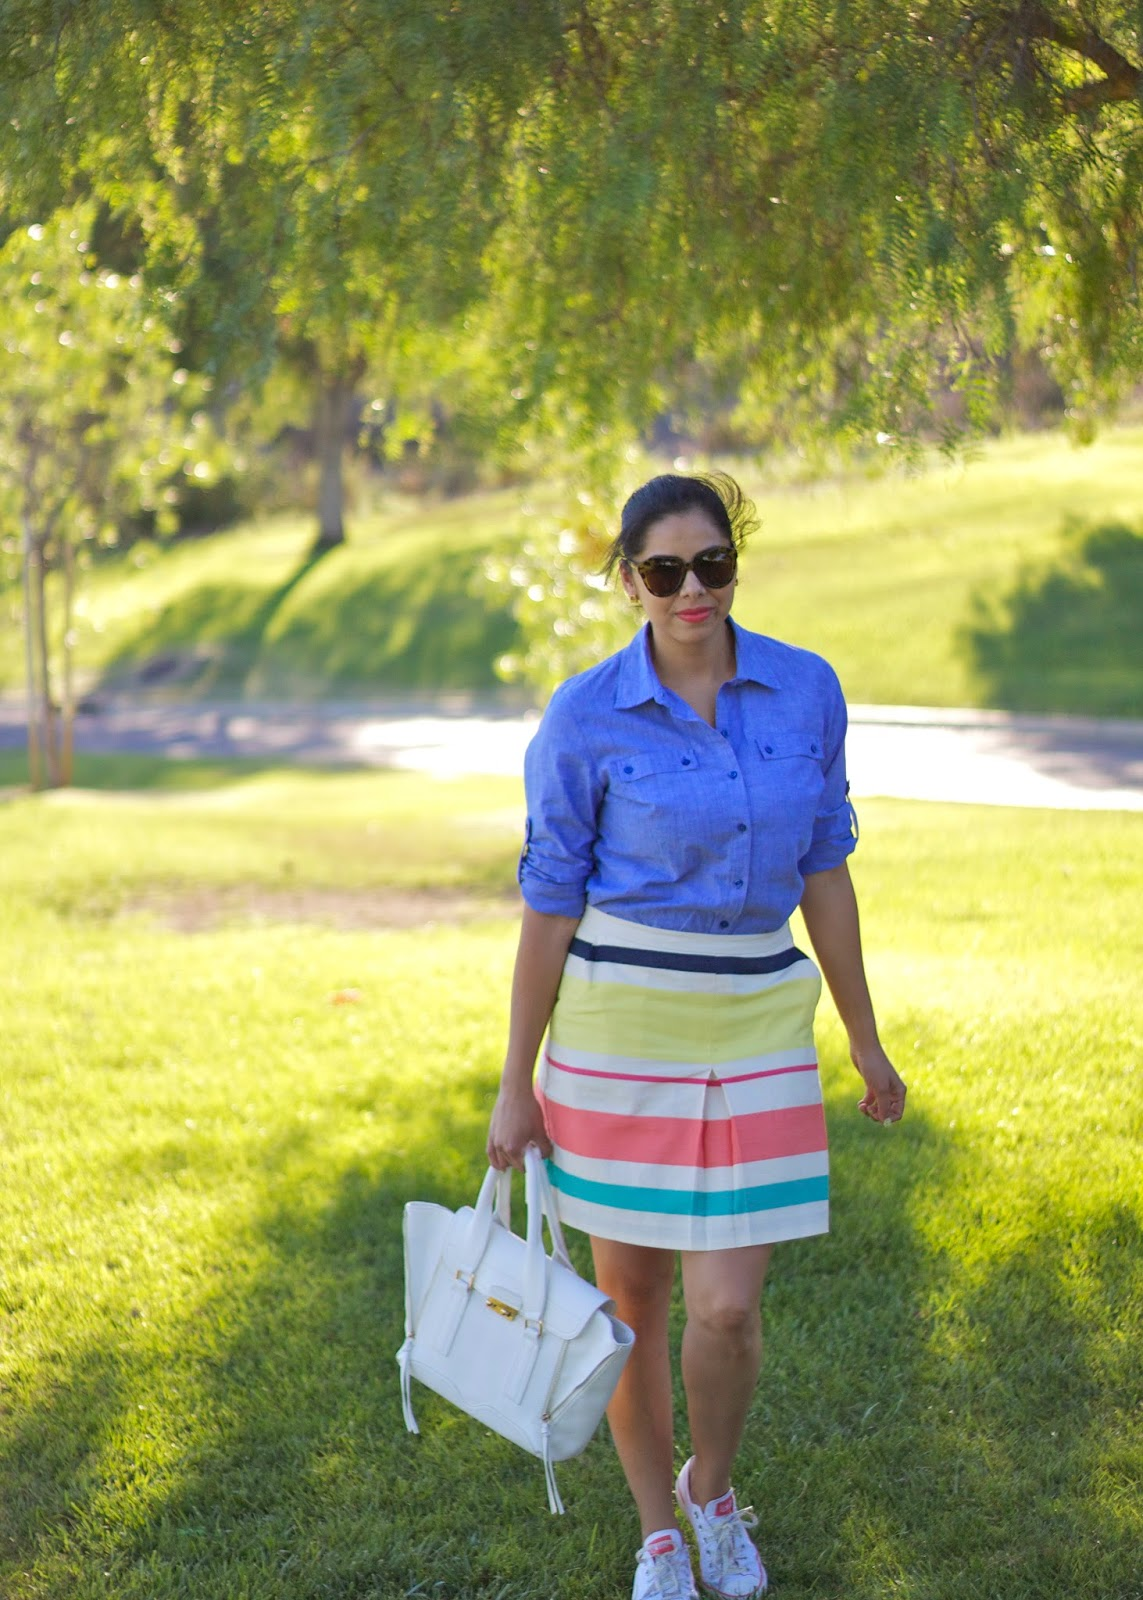 chambray top from Tommy Hilfiger, how to wear a chambray top, ways to wear a chambray top sporty, striped skirt from tommy hilfiger, how to wear converses